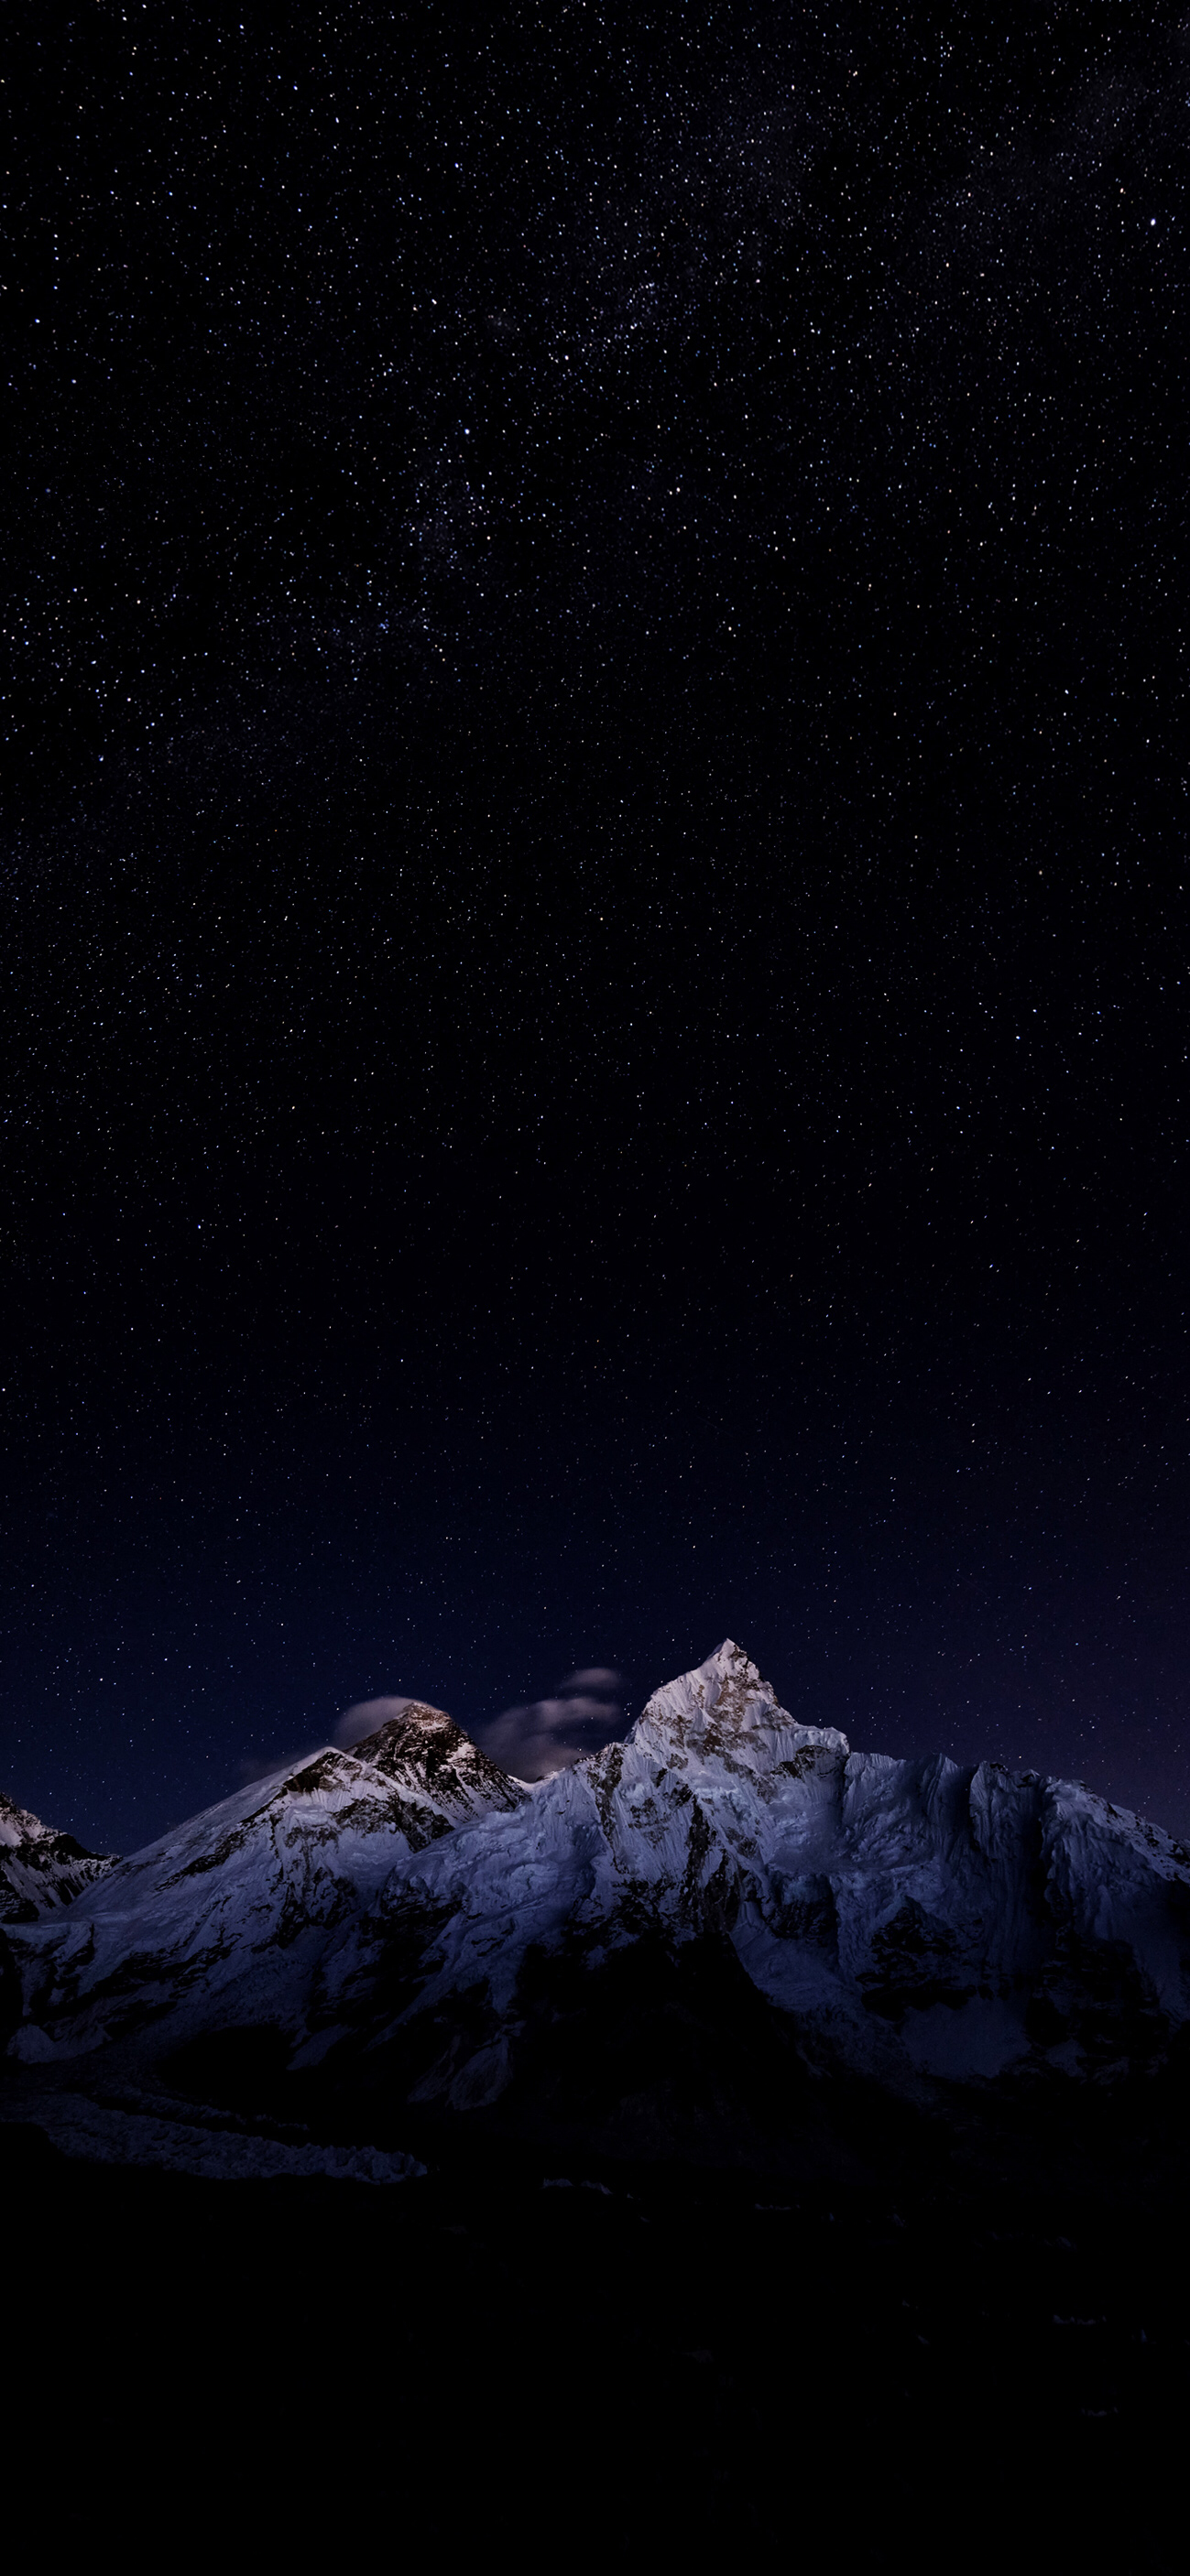 Snowy Mountains At Starry Night Landscape Wallpaper Scenery